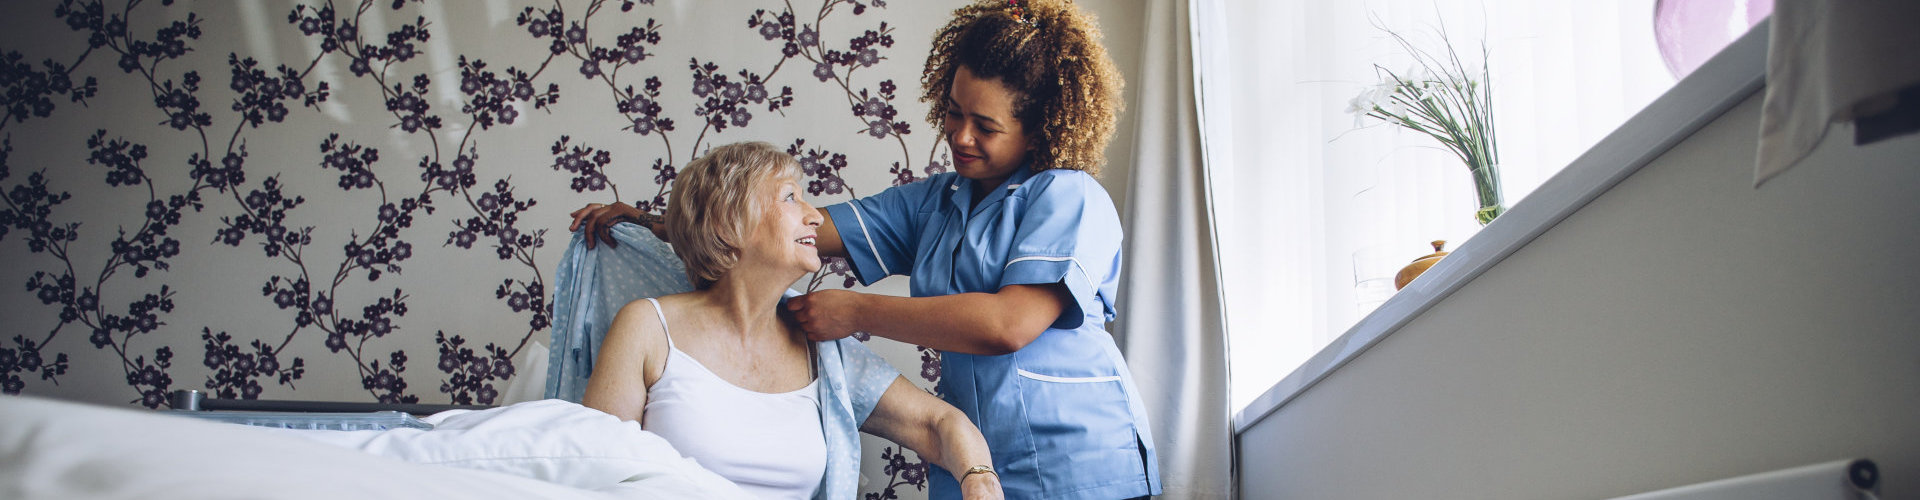 caregiver assisting the elder woman to dress up